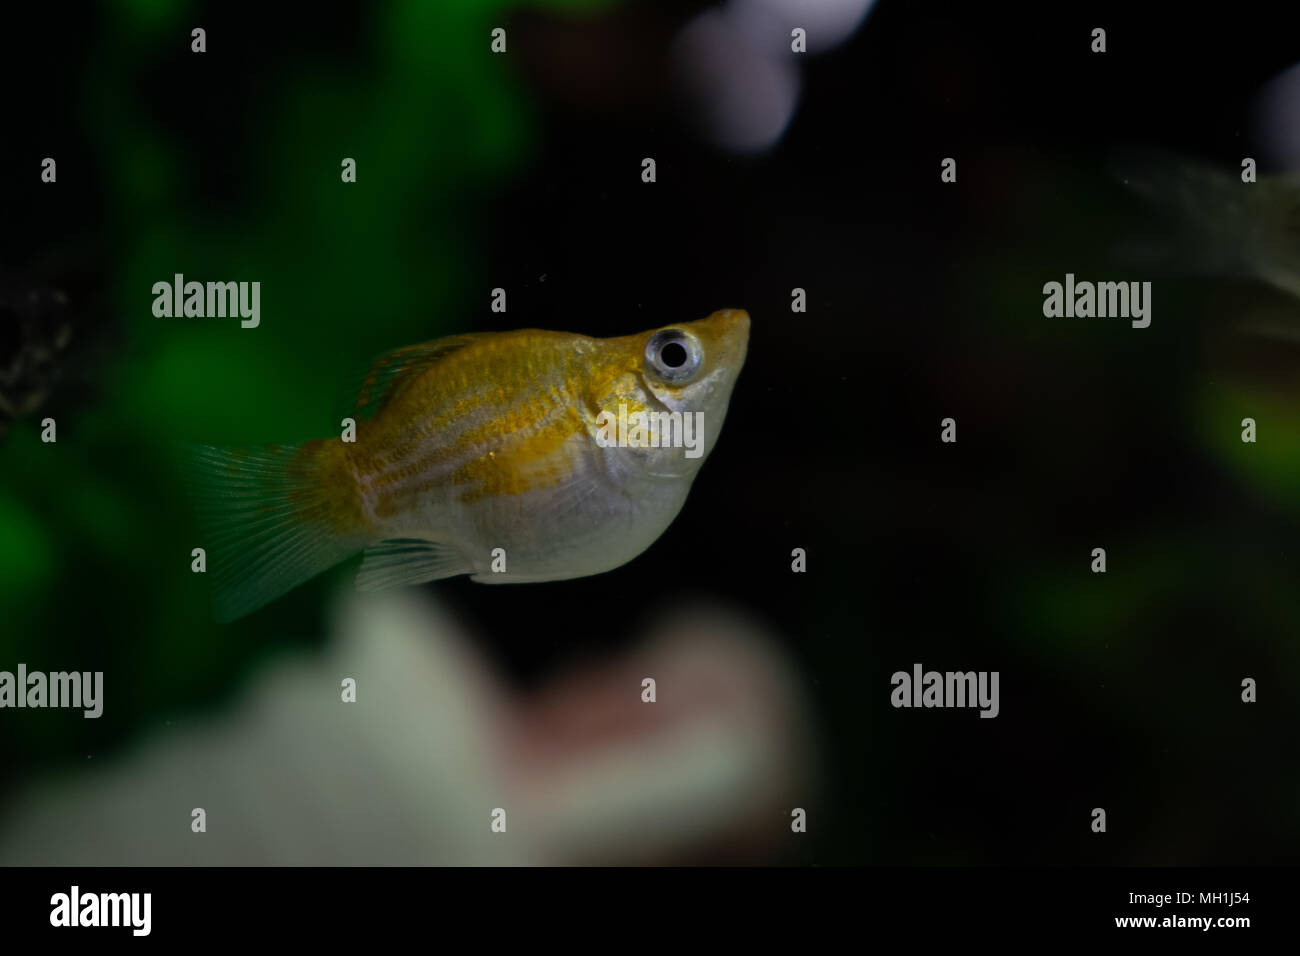 Small yellow and white balloon molly poecilia sphenops fish swimming underwater in aquarium on a dark background Stock Photo